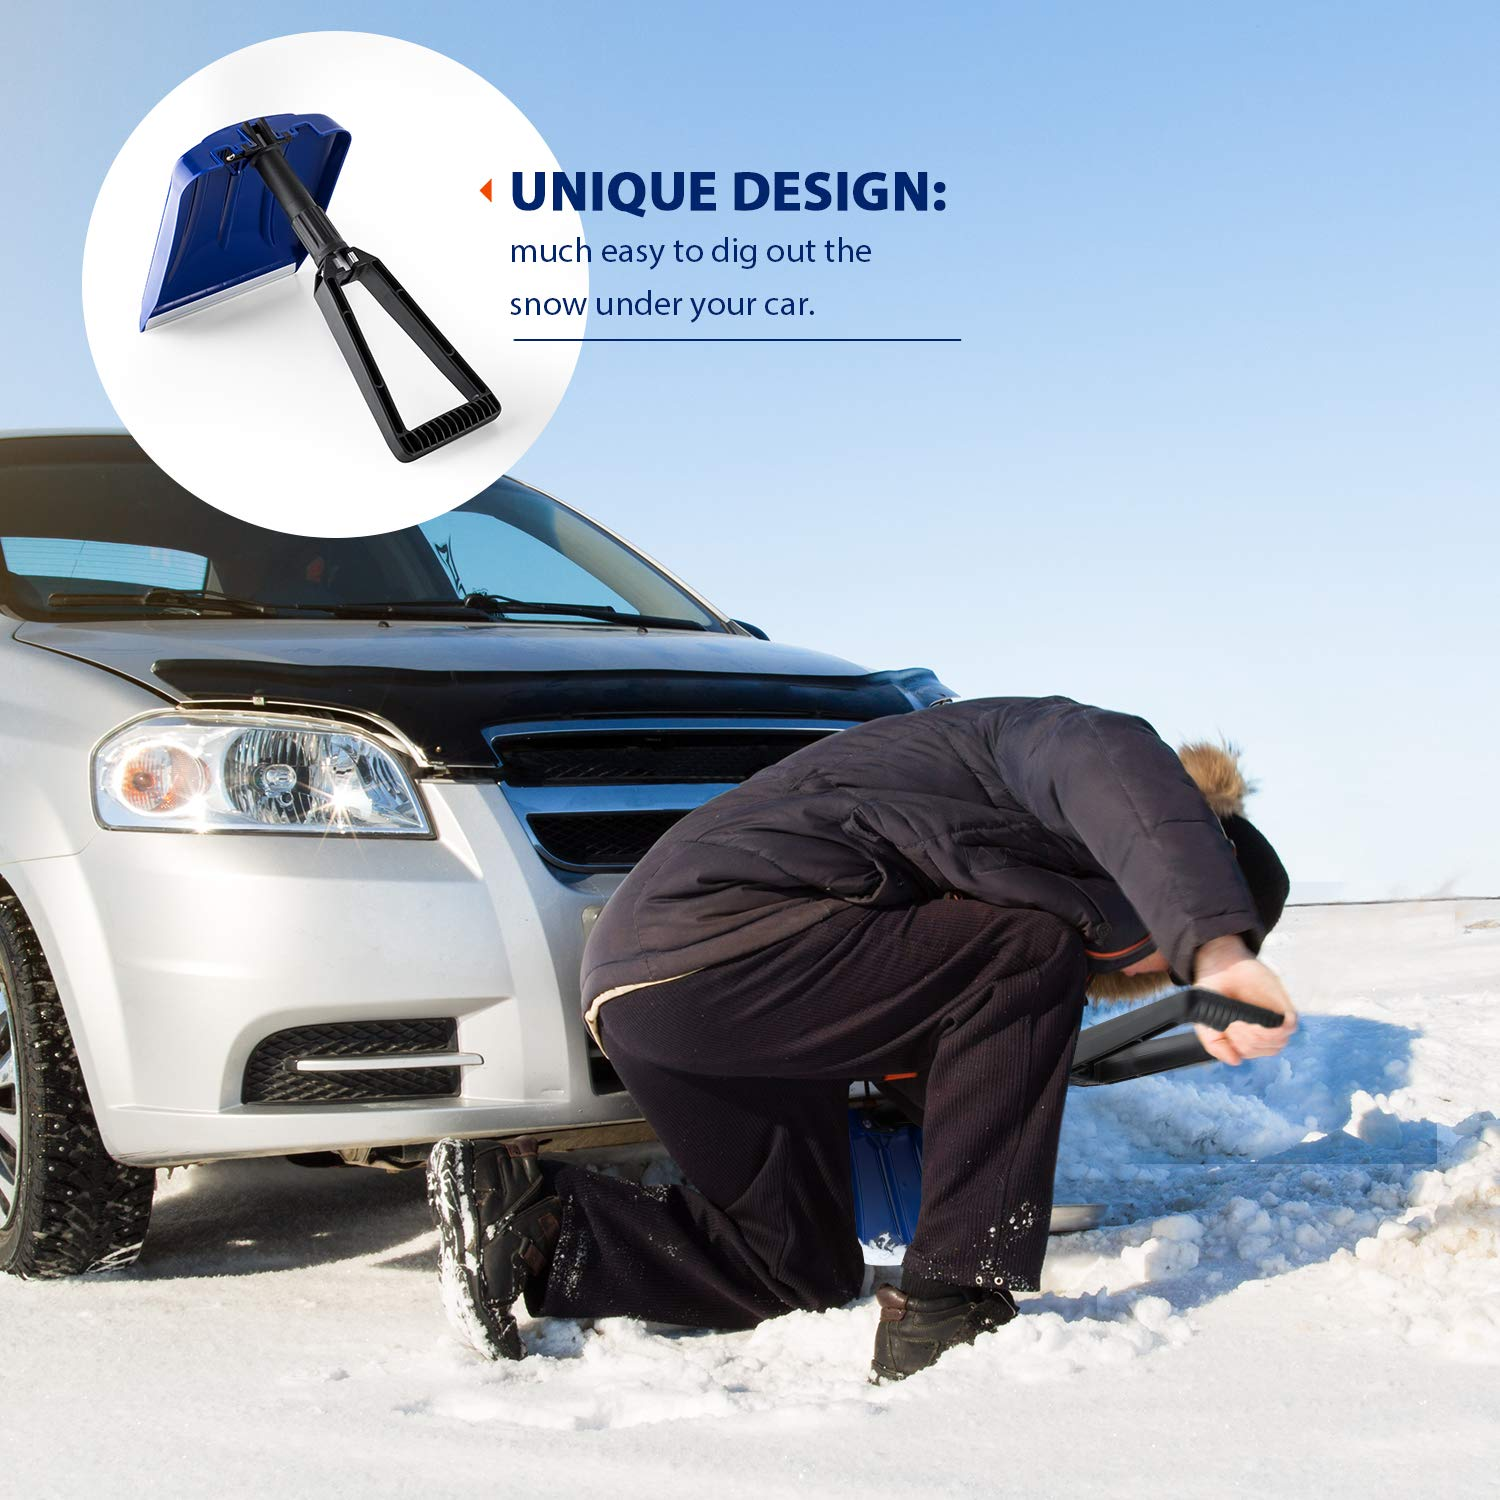 Emergency Folding Snow Shovel with D-Grip Handle & Durable Aluminum Edge Blade 2 Shovel Bulk Pack